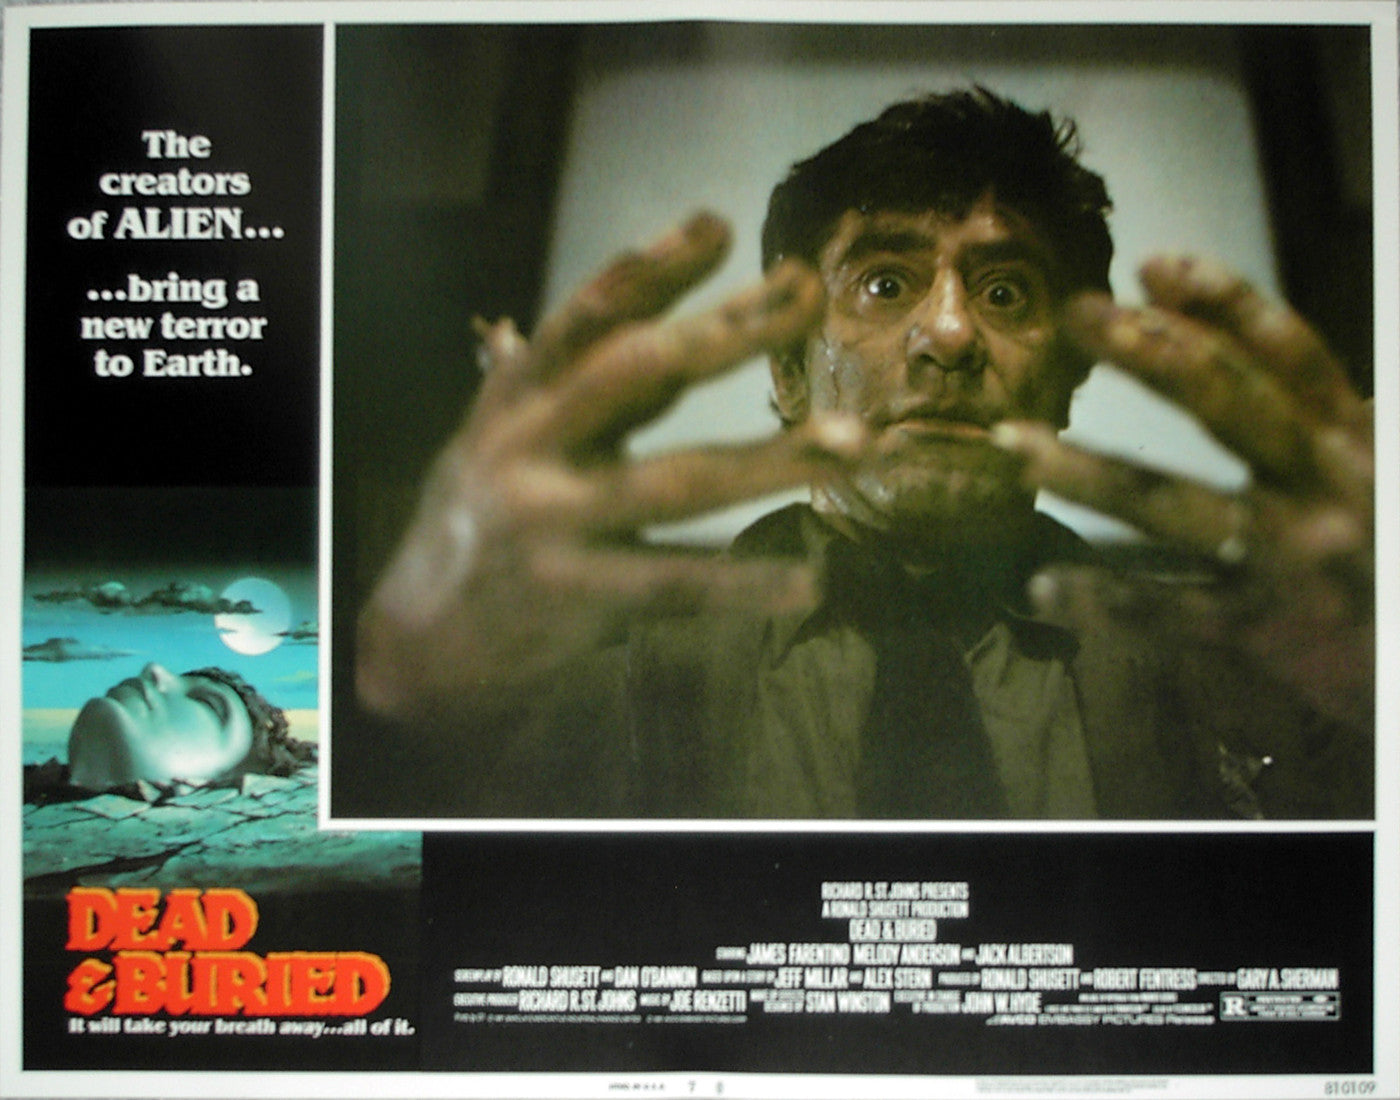 DEAD & BURIED - US lobby card v7